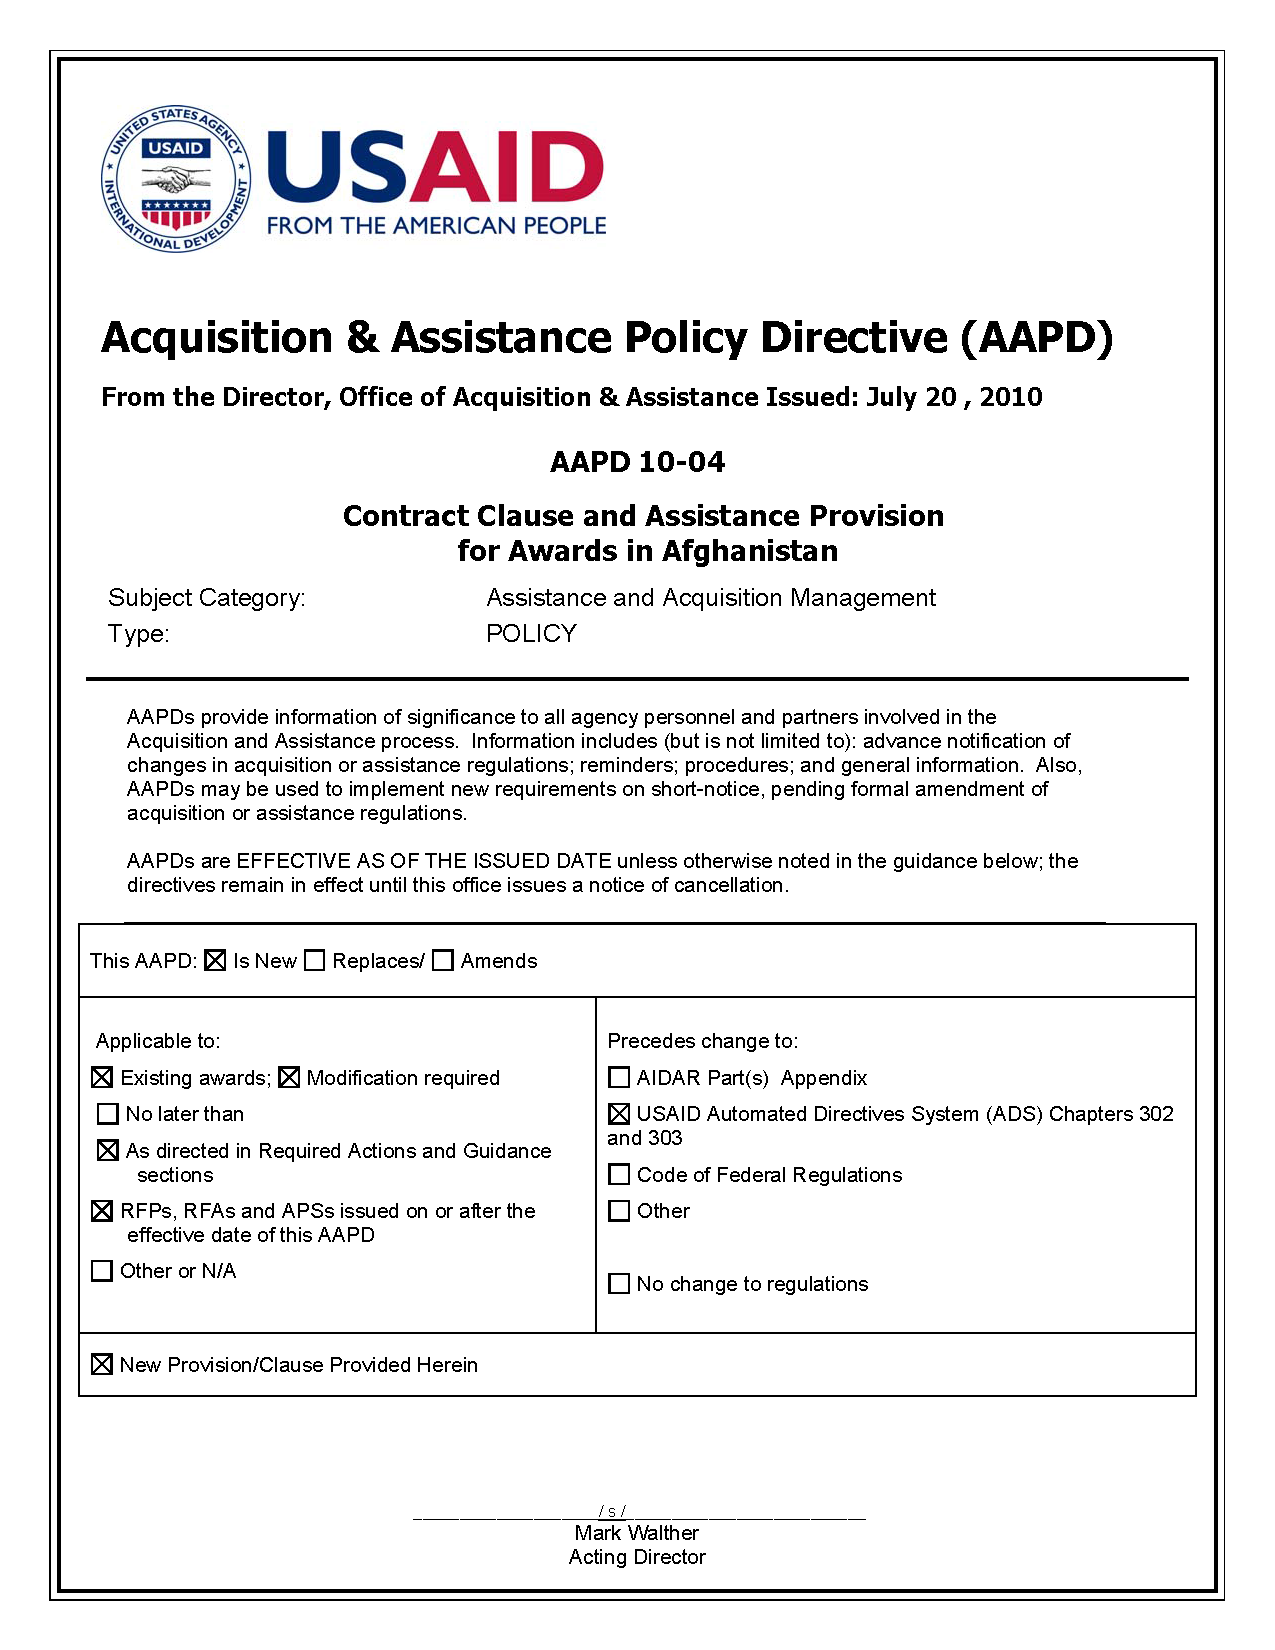 AAPD 10-04